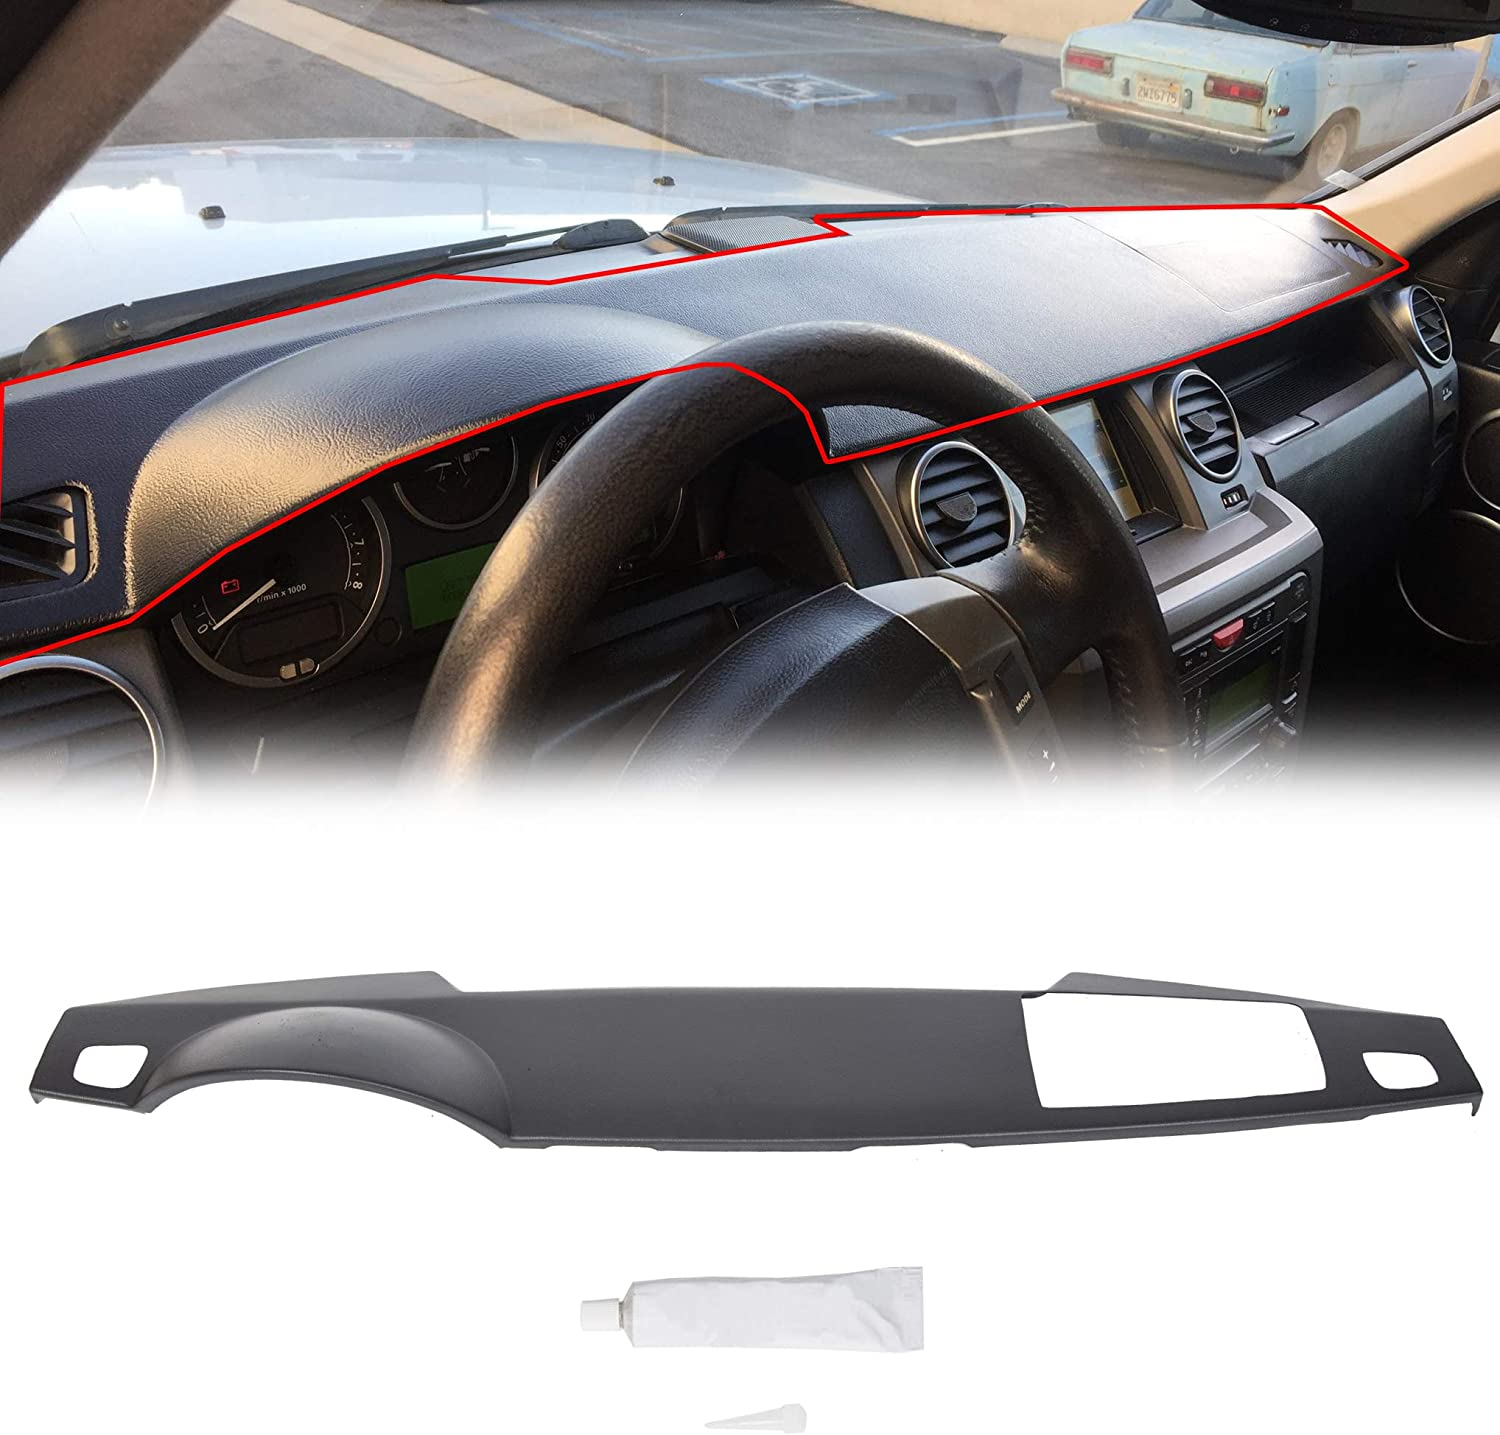 ECOTRIC Dashboard Cover for 2005-2009 Land Rover LR3 Range Rover Sport